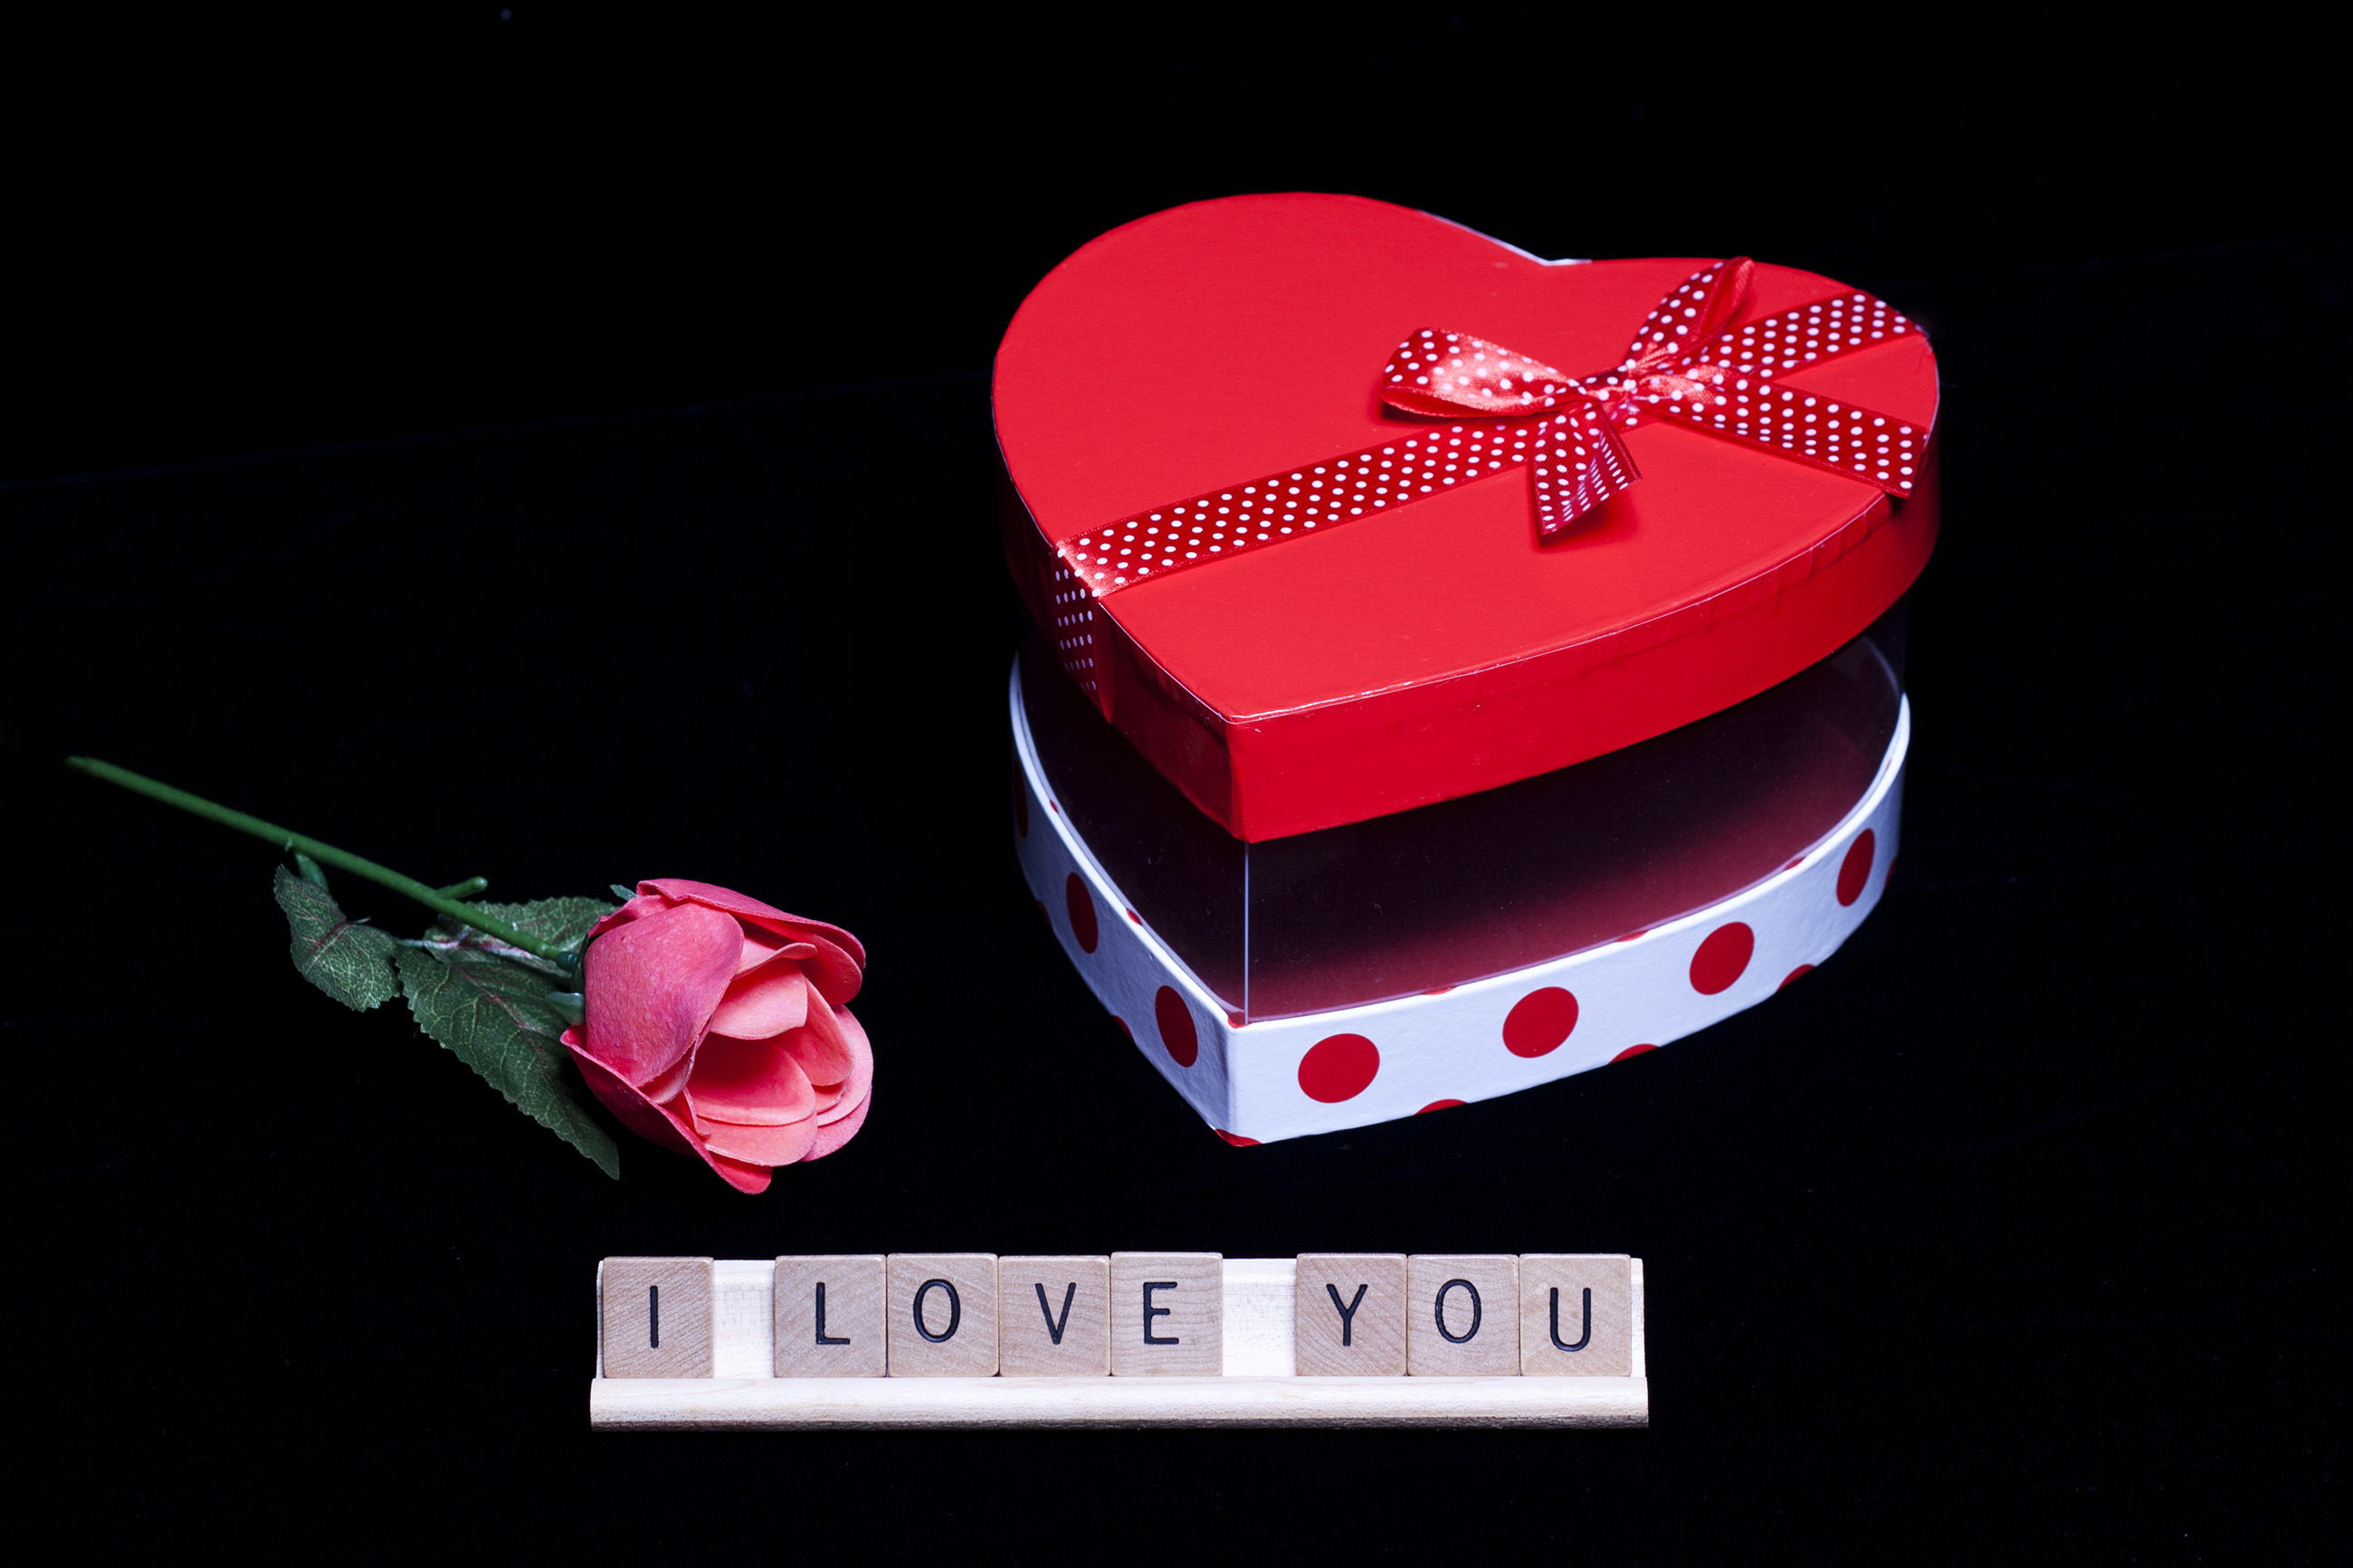 Love on Valentine's Day, Affection, Romance, Objects, Package, HQ Photo